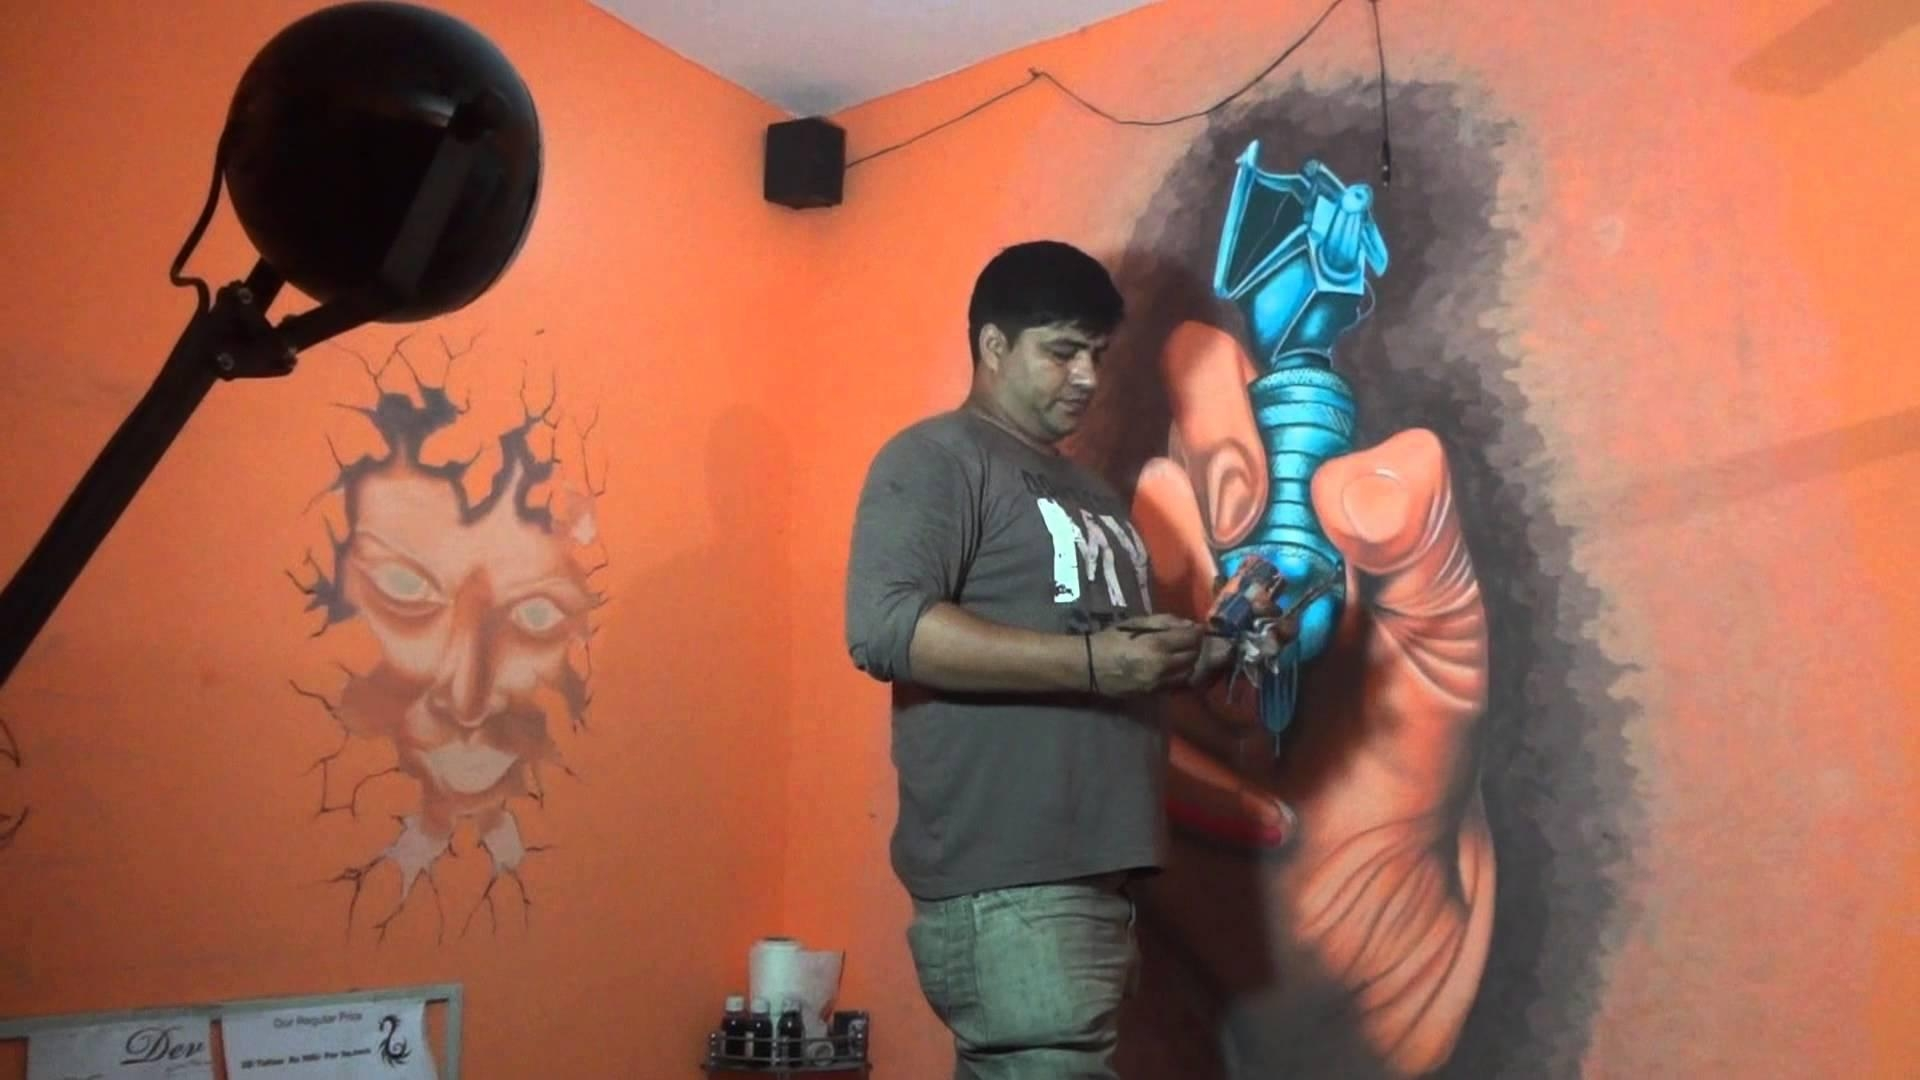 Tattoo Shop Wall Artdev 9313666999 – Youtube Throughout Tattoos Wall Art (Image 11 of 20)